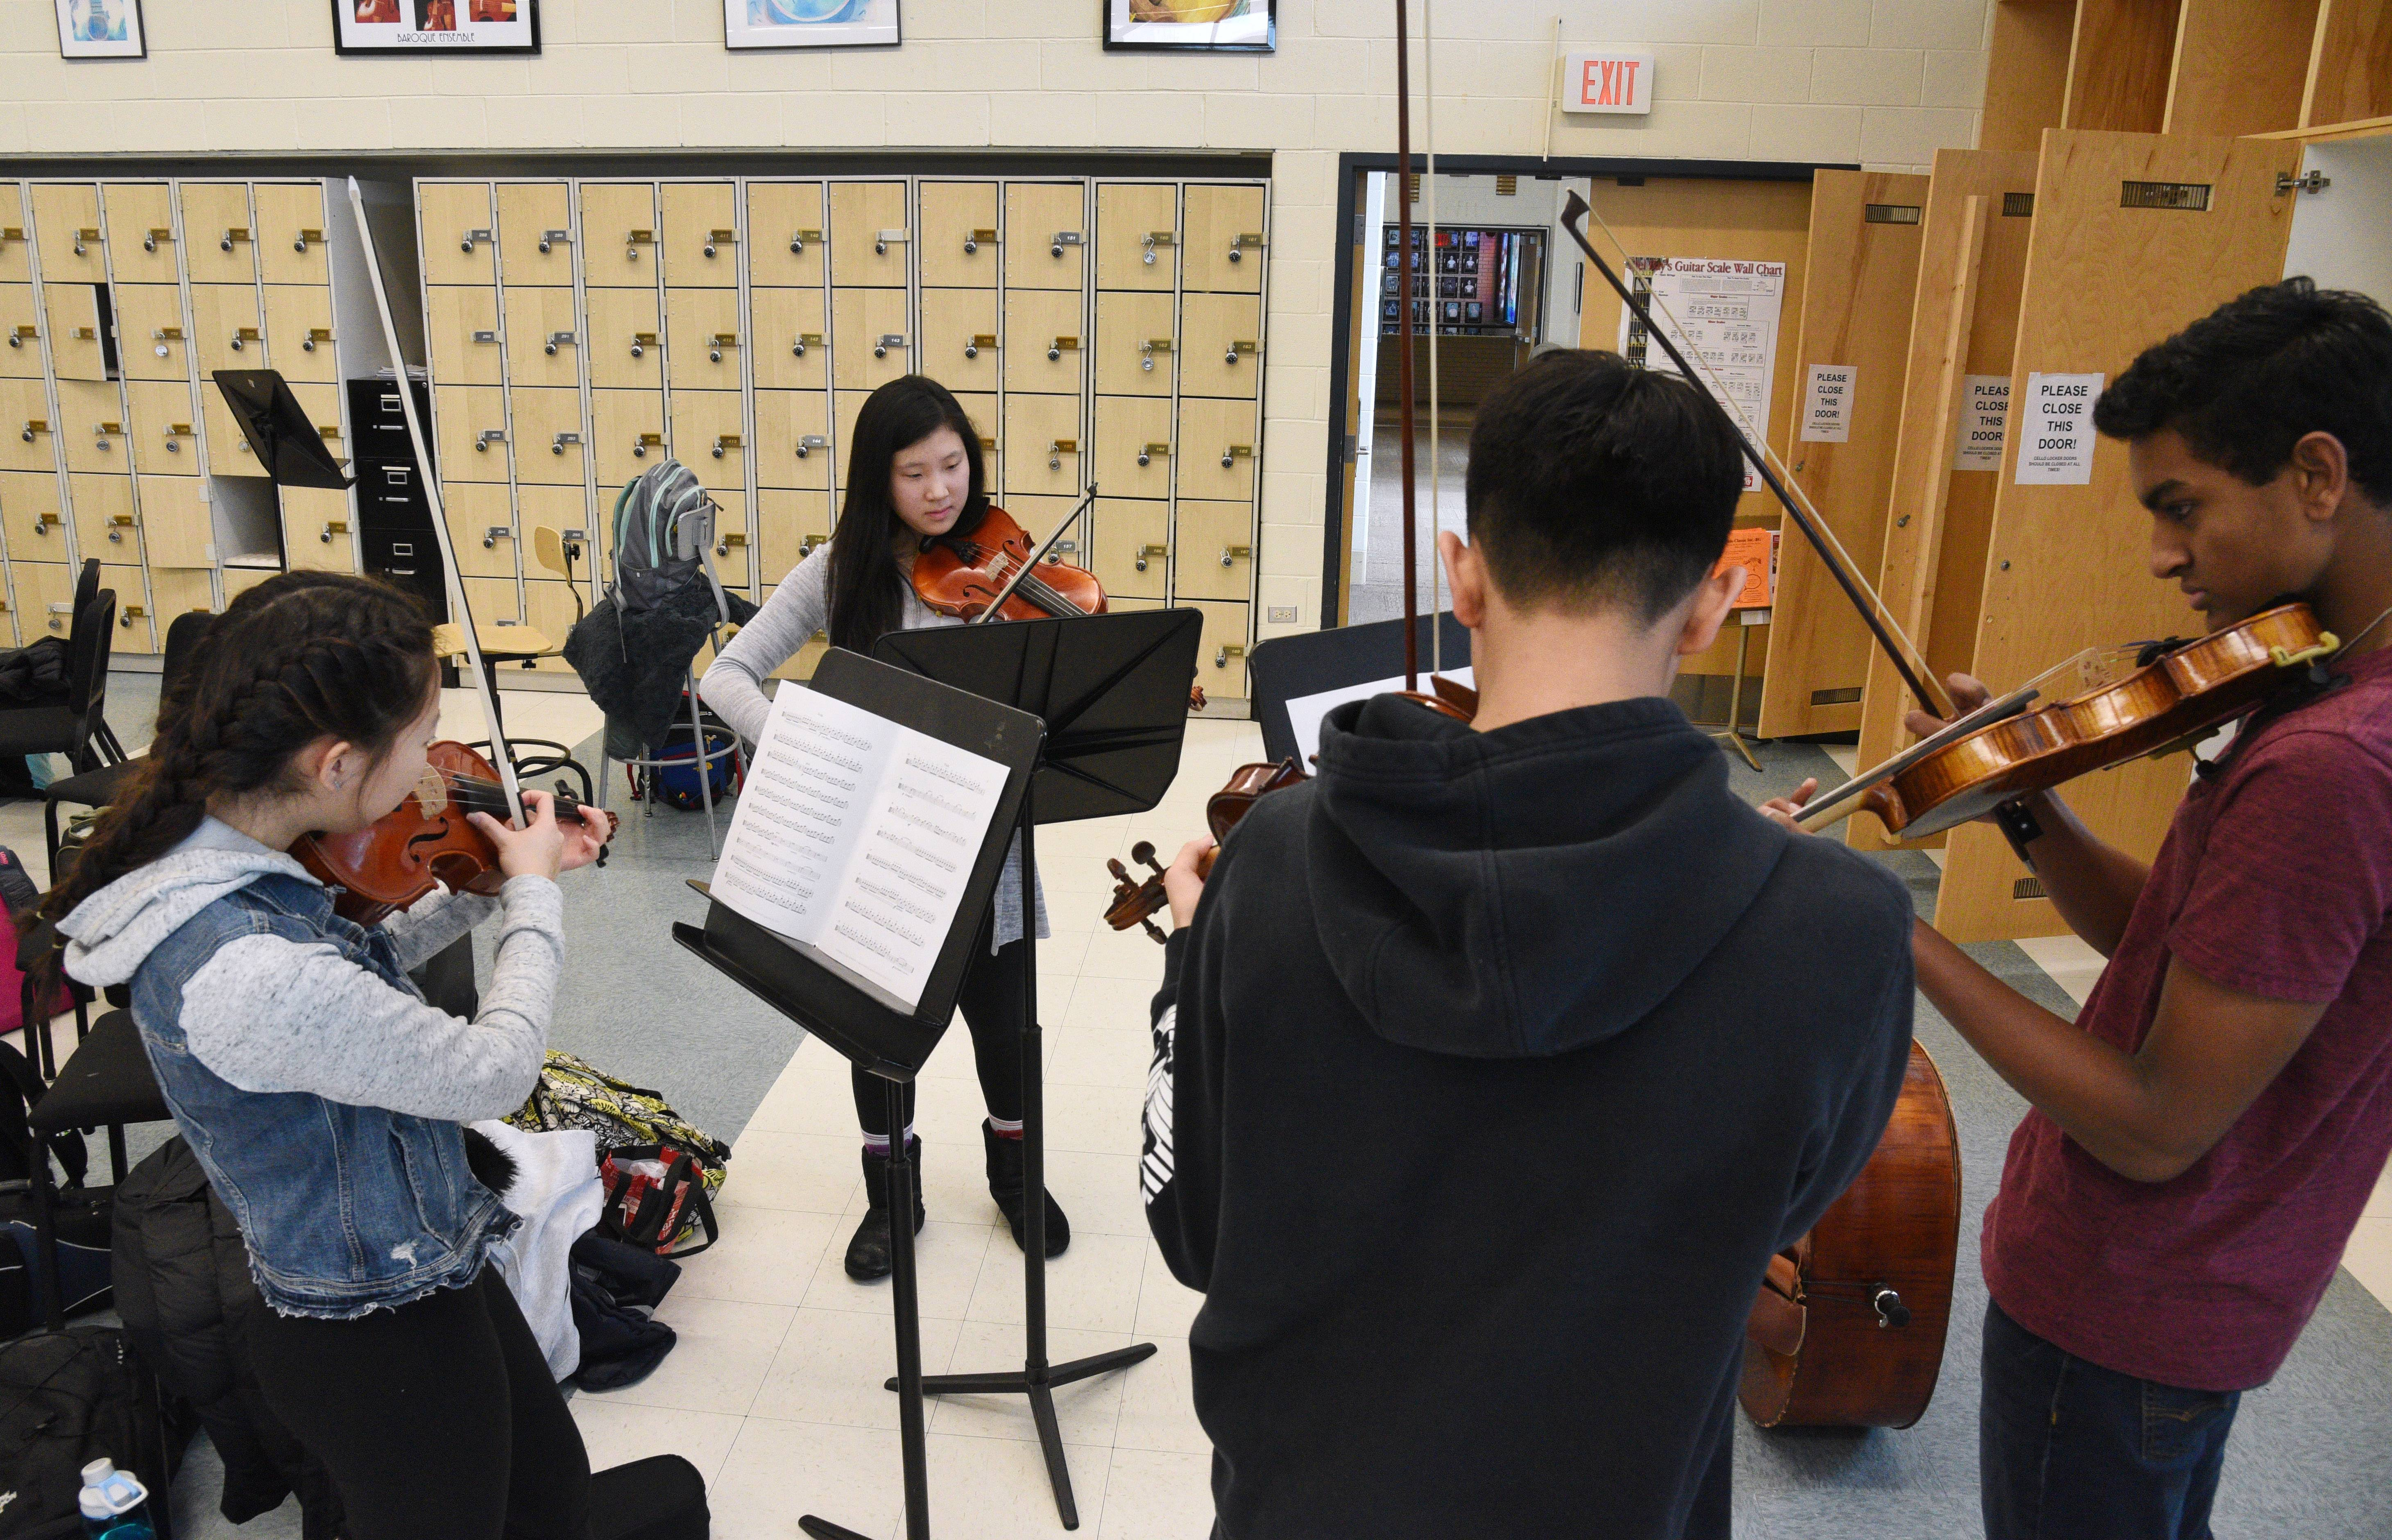 Stevenson High School concert orchestra members Christine Kim, Melissa Liu, Josh Chae and Justin Kuncheria rehearse at the Lincolnshire school Tuesday. Instrument storage space and lockers will be reconfigured this summer.